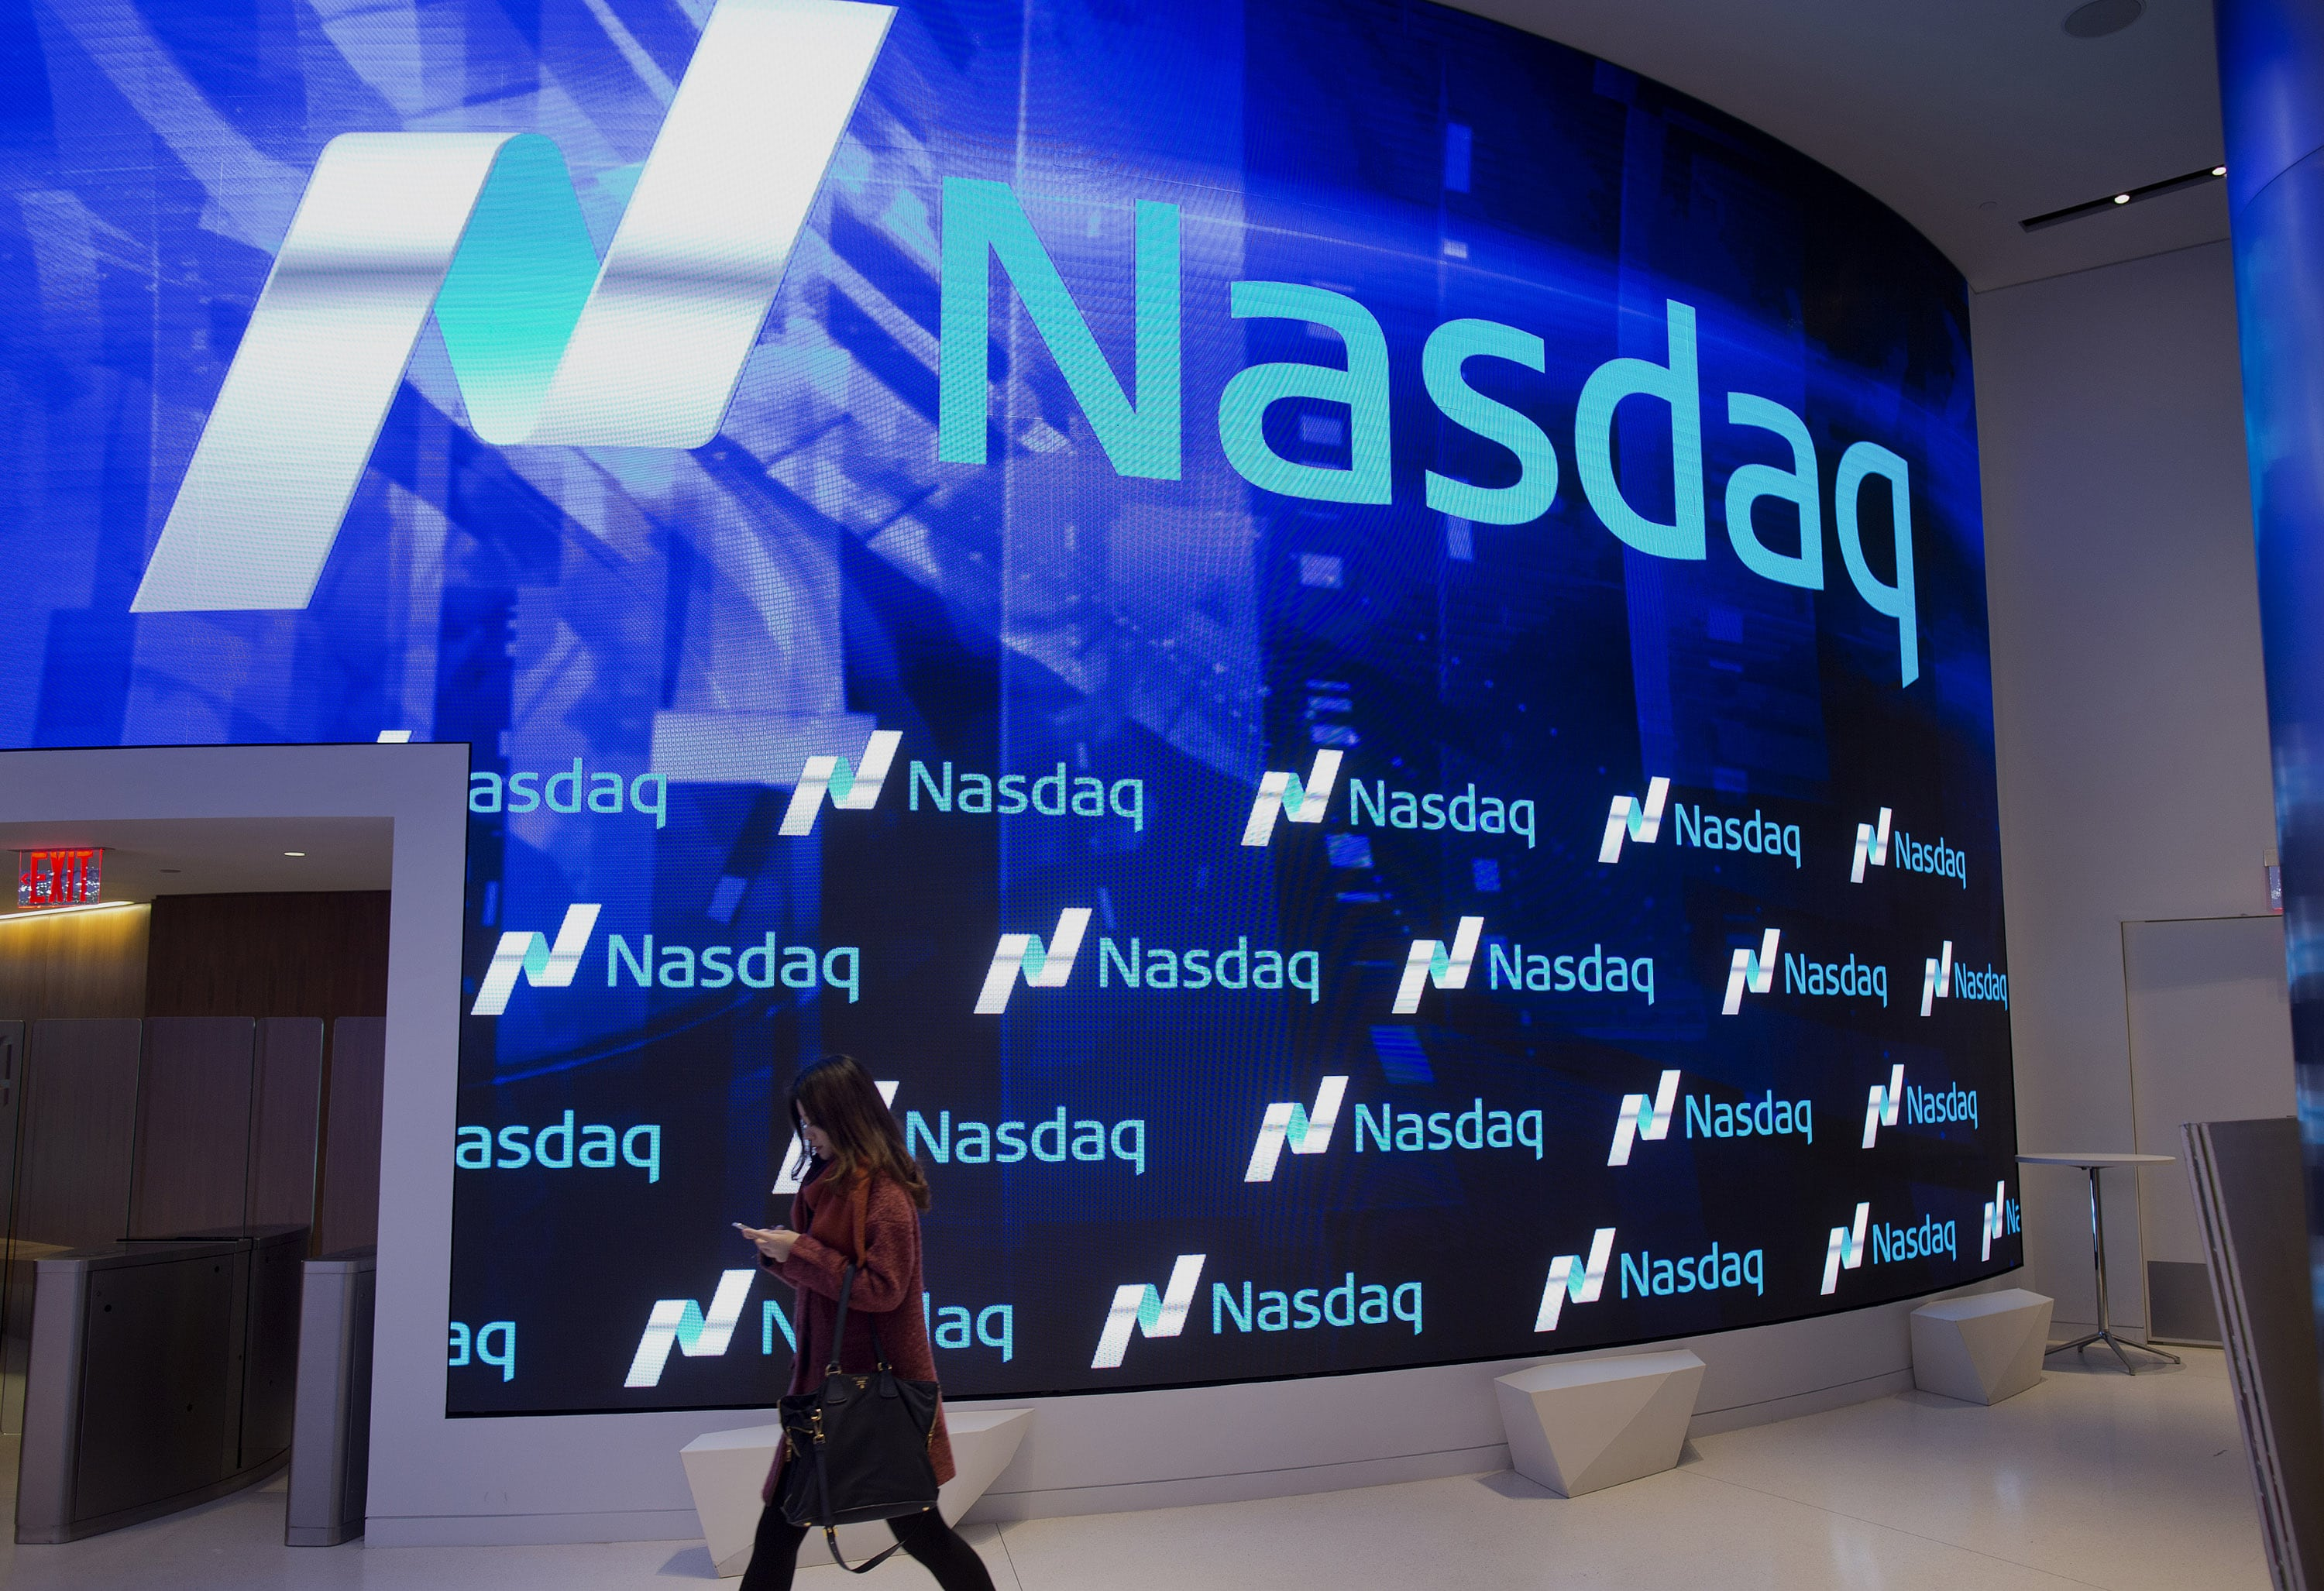 Bahrain-Based Bank ABC Selects Nasdaq BWise for its GRC-Related Needs